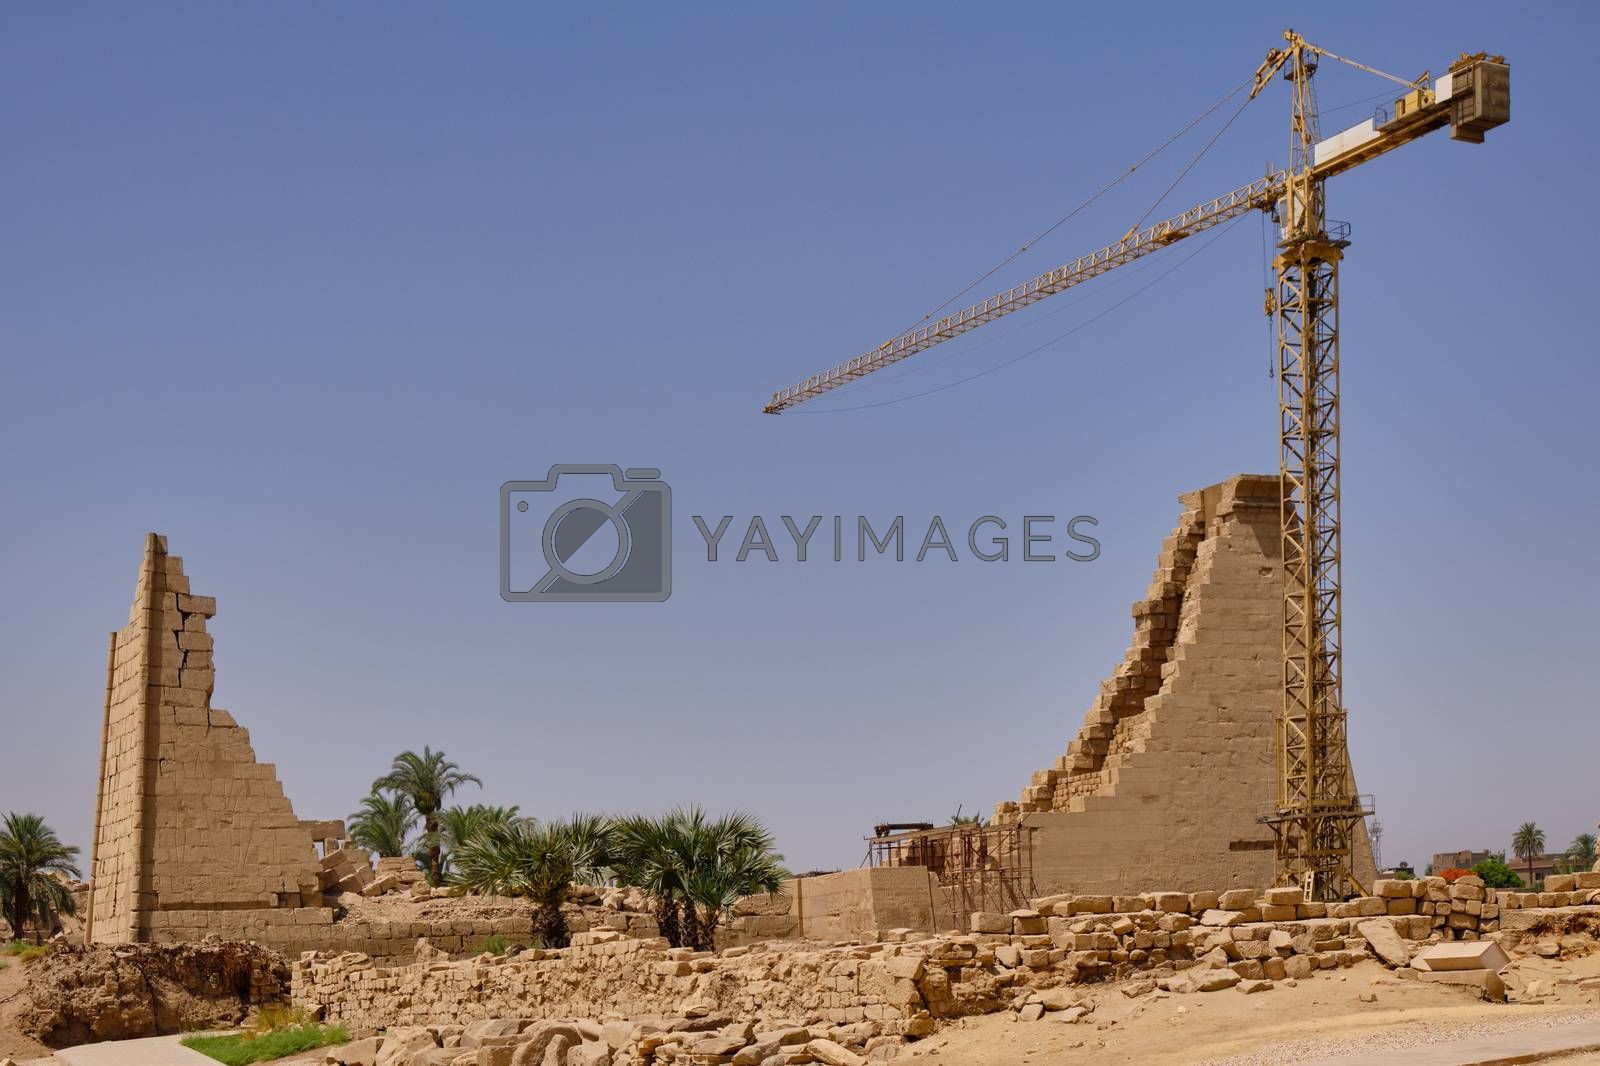 Luxor / Egypt - May 23 2019: Remains of Karnak temple complex and Karnak Open Air Museum (about 1250 BC), Luxor, Egypt